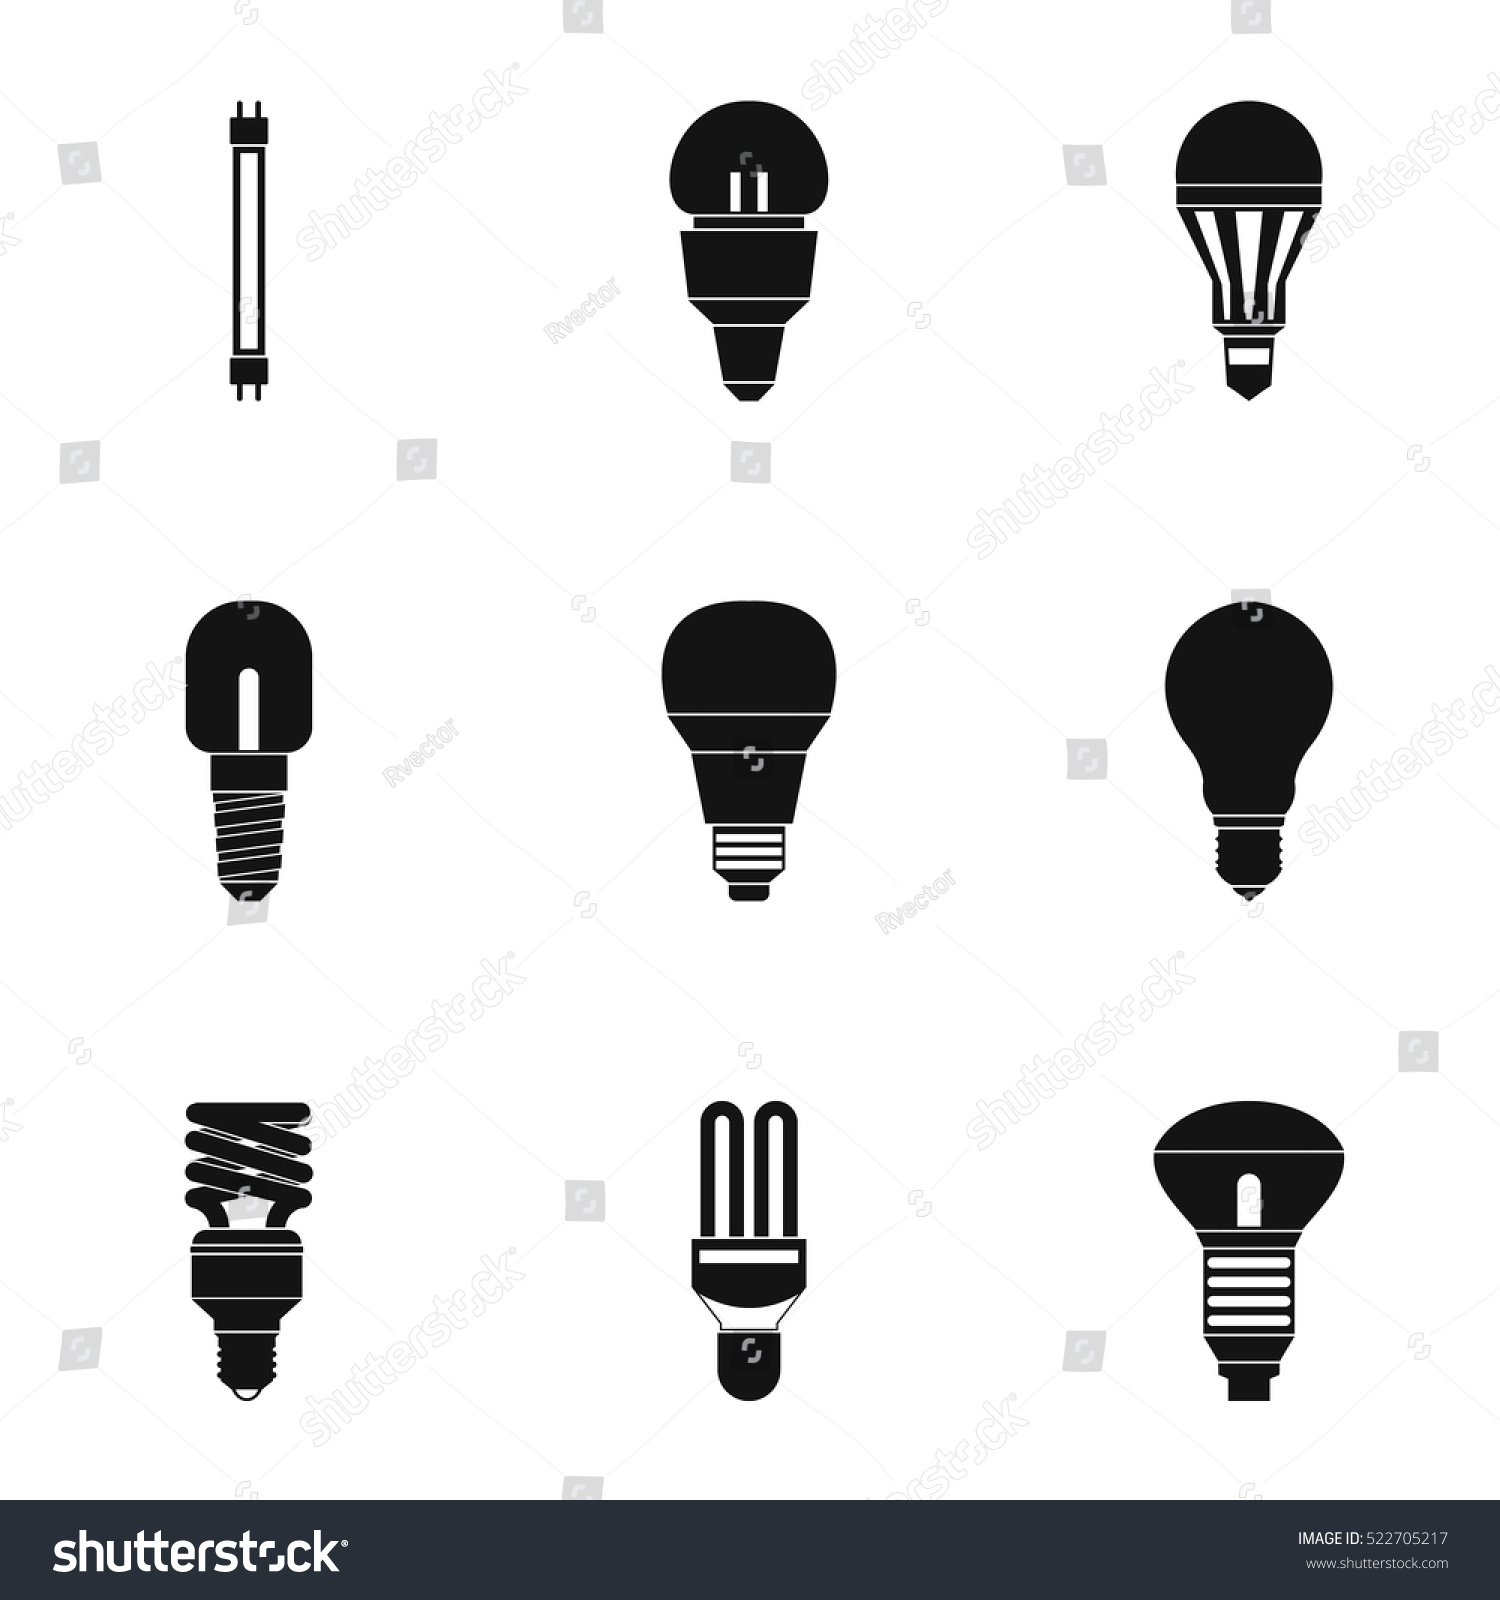 Types Of Lamps Icons Set. Simple Illustration Of 9 Types Of Lamps Vector  Icons For